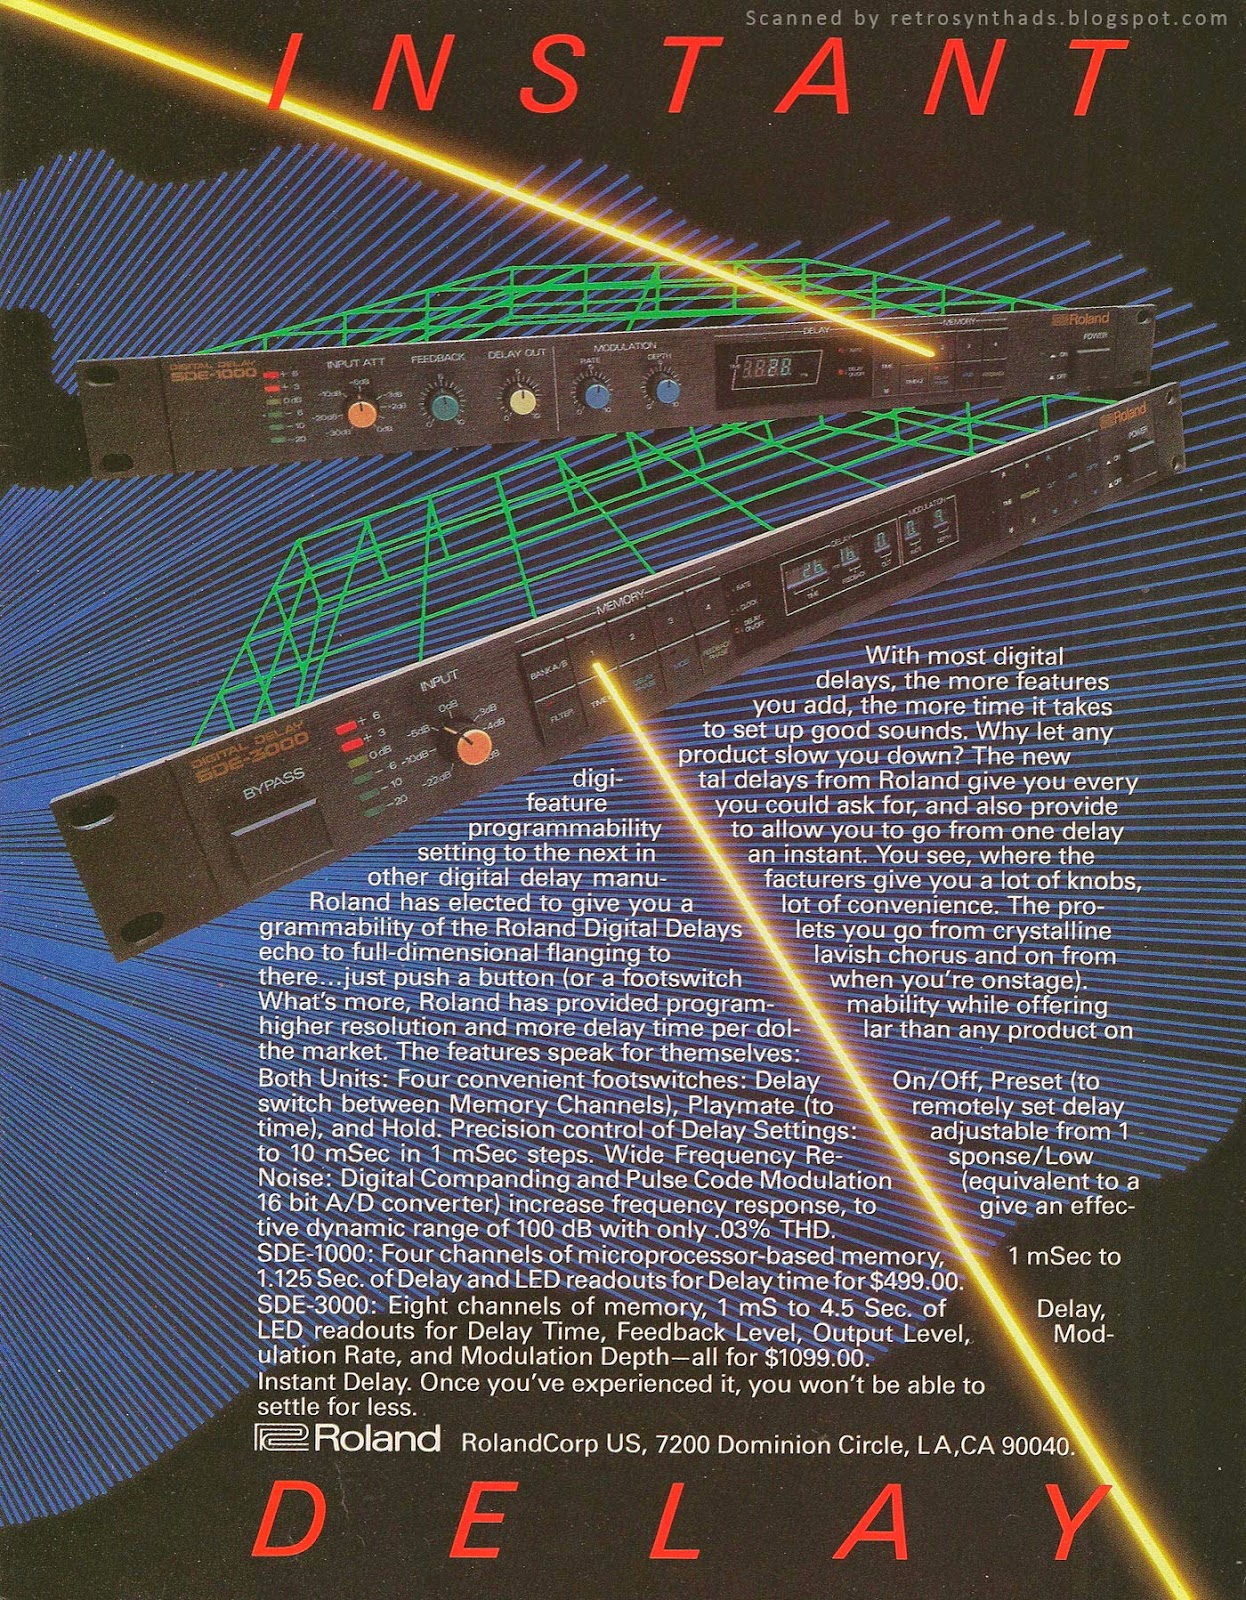 http://retrosynthads.blogspot.ca/2014/08/roland-sde-3000-and-1000-instant-delay.html